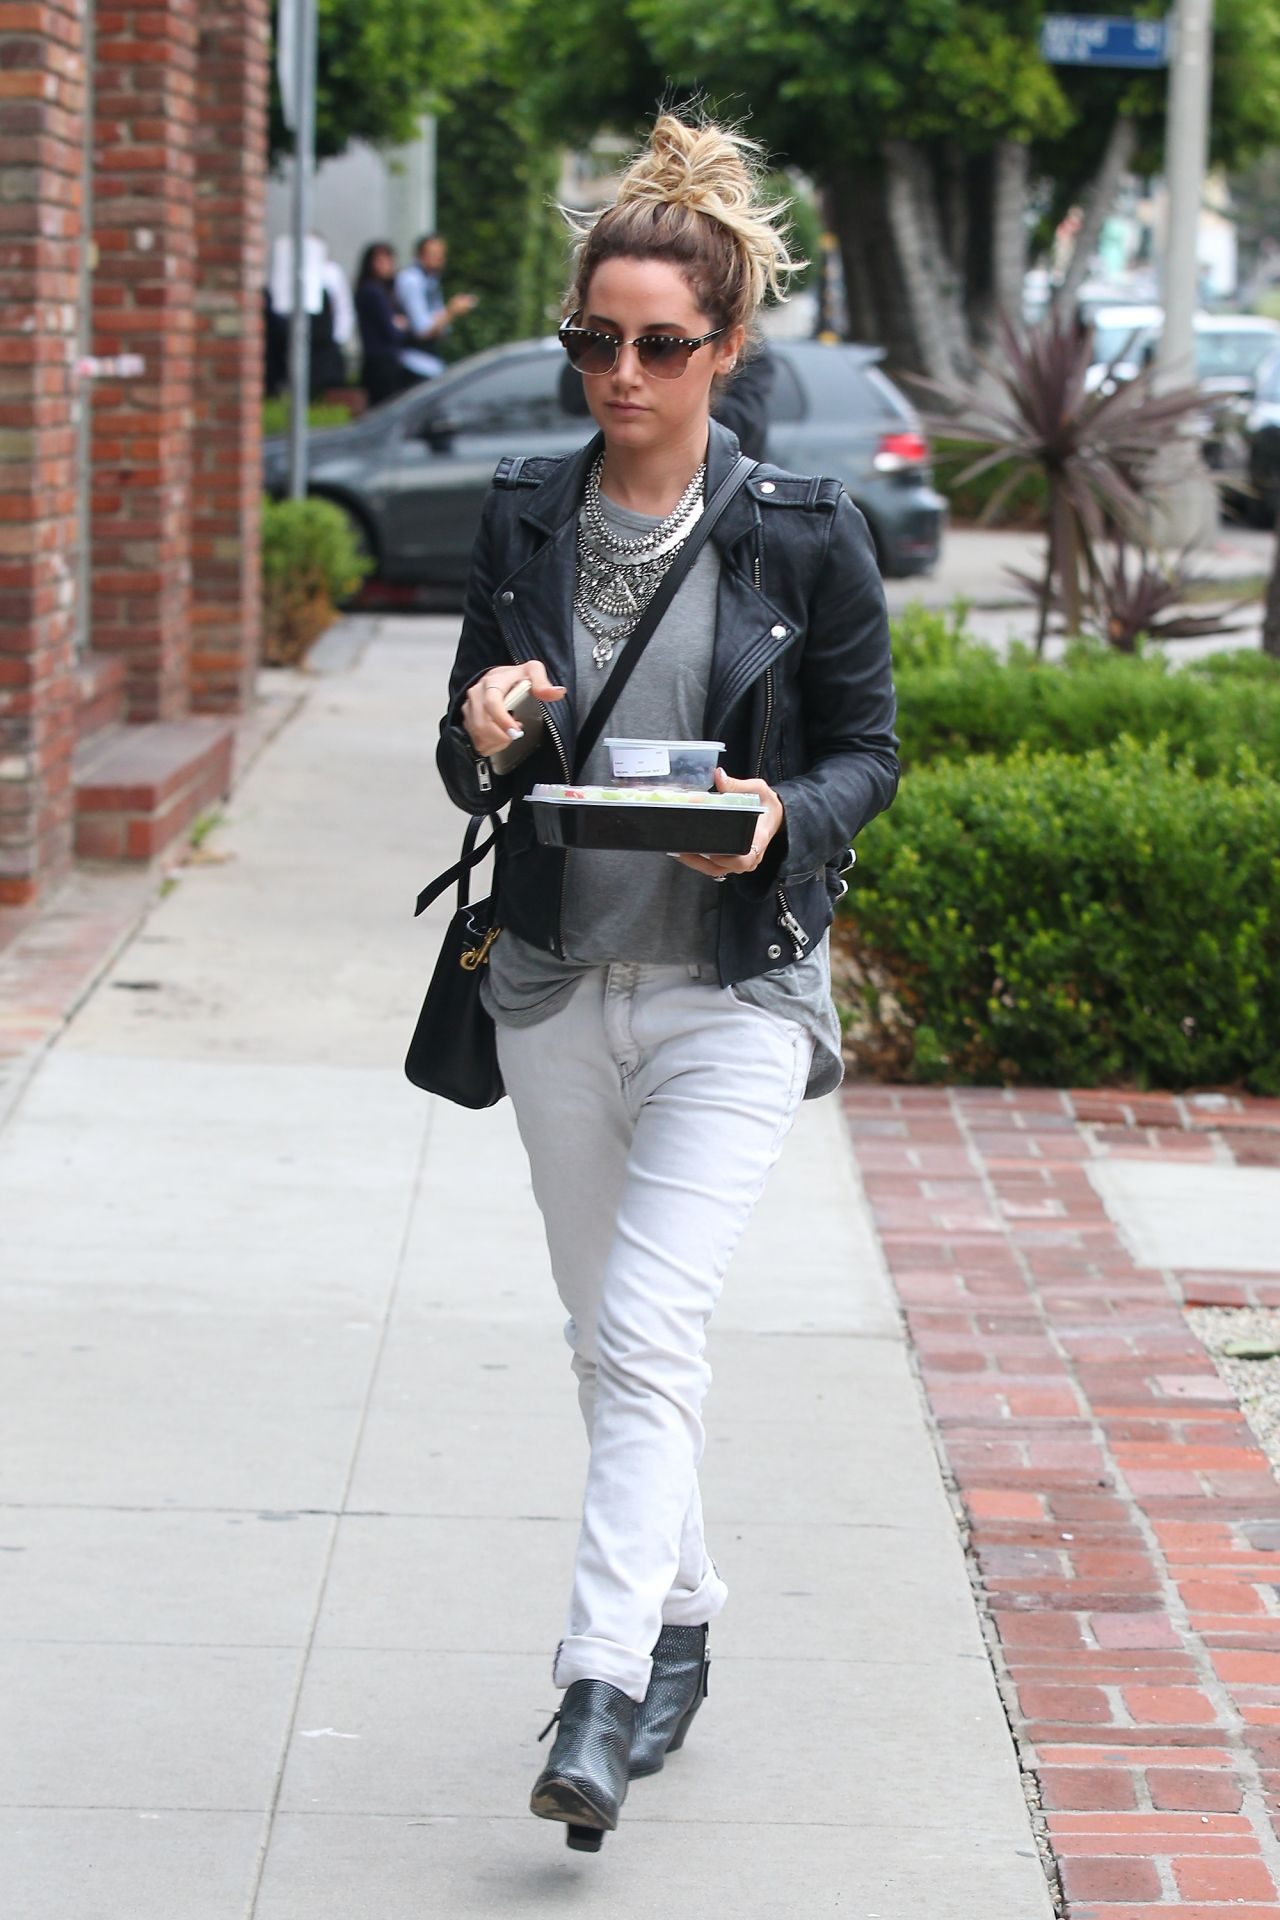 Ashley Tisdale Street Style - Shopping and Getting Some Food in West Hollywood - Dec. 2014